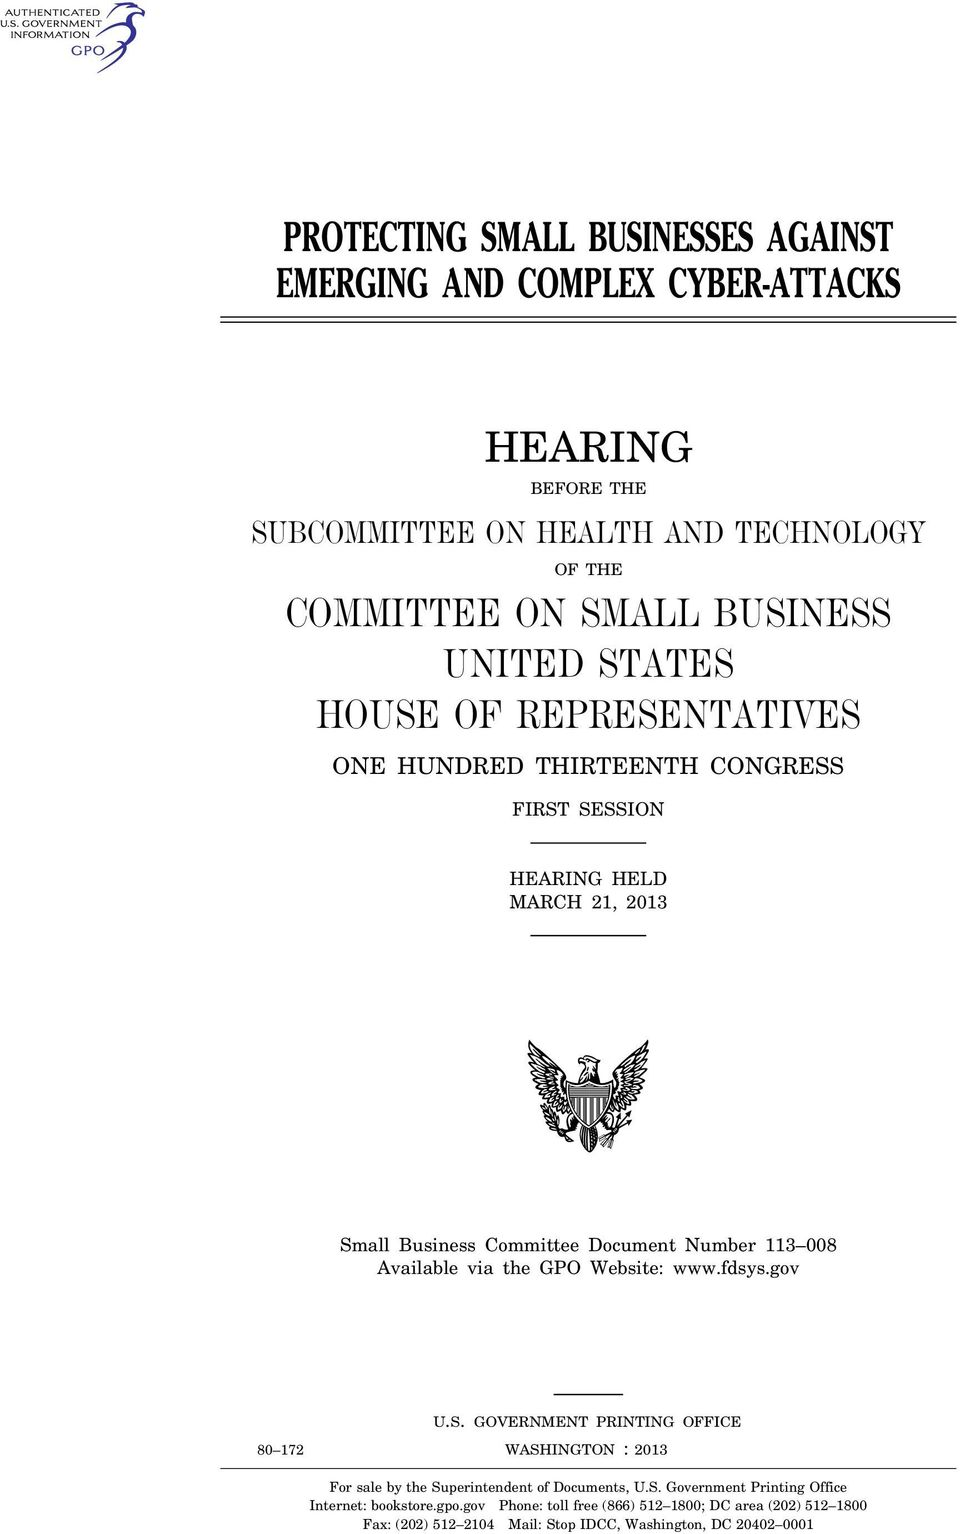 TXT DEBBIE Congress.#13 For sale by the Superintendent of Documents, U.S. Government Printing Office Internet: bookstore.gpo.